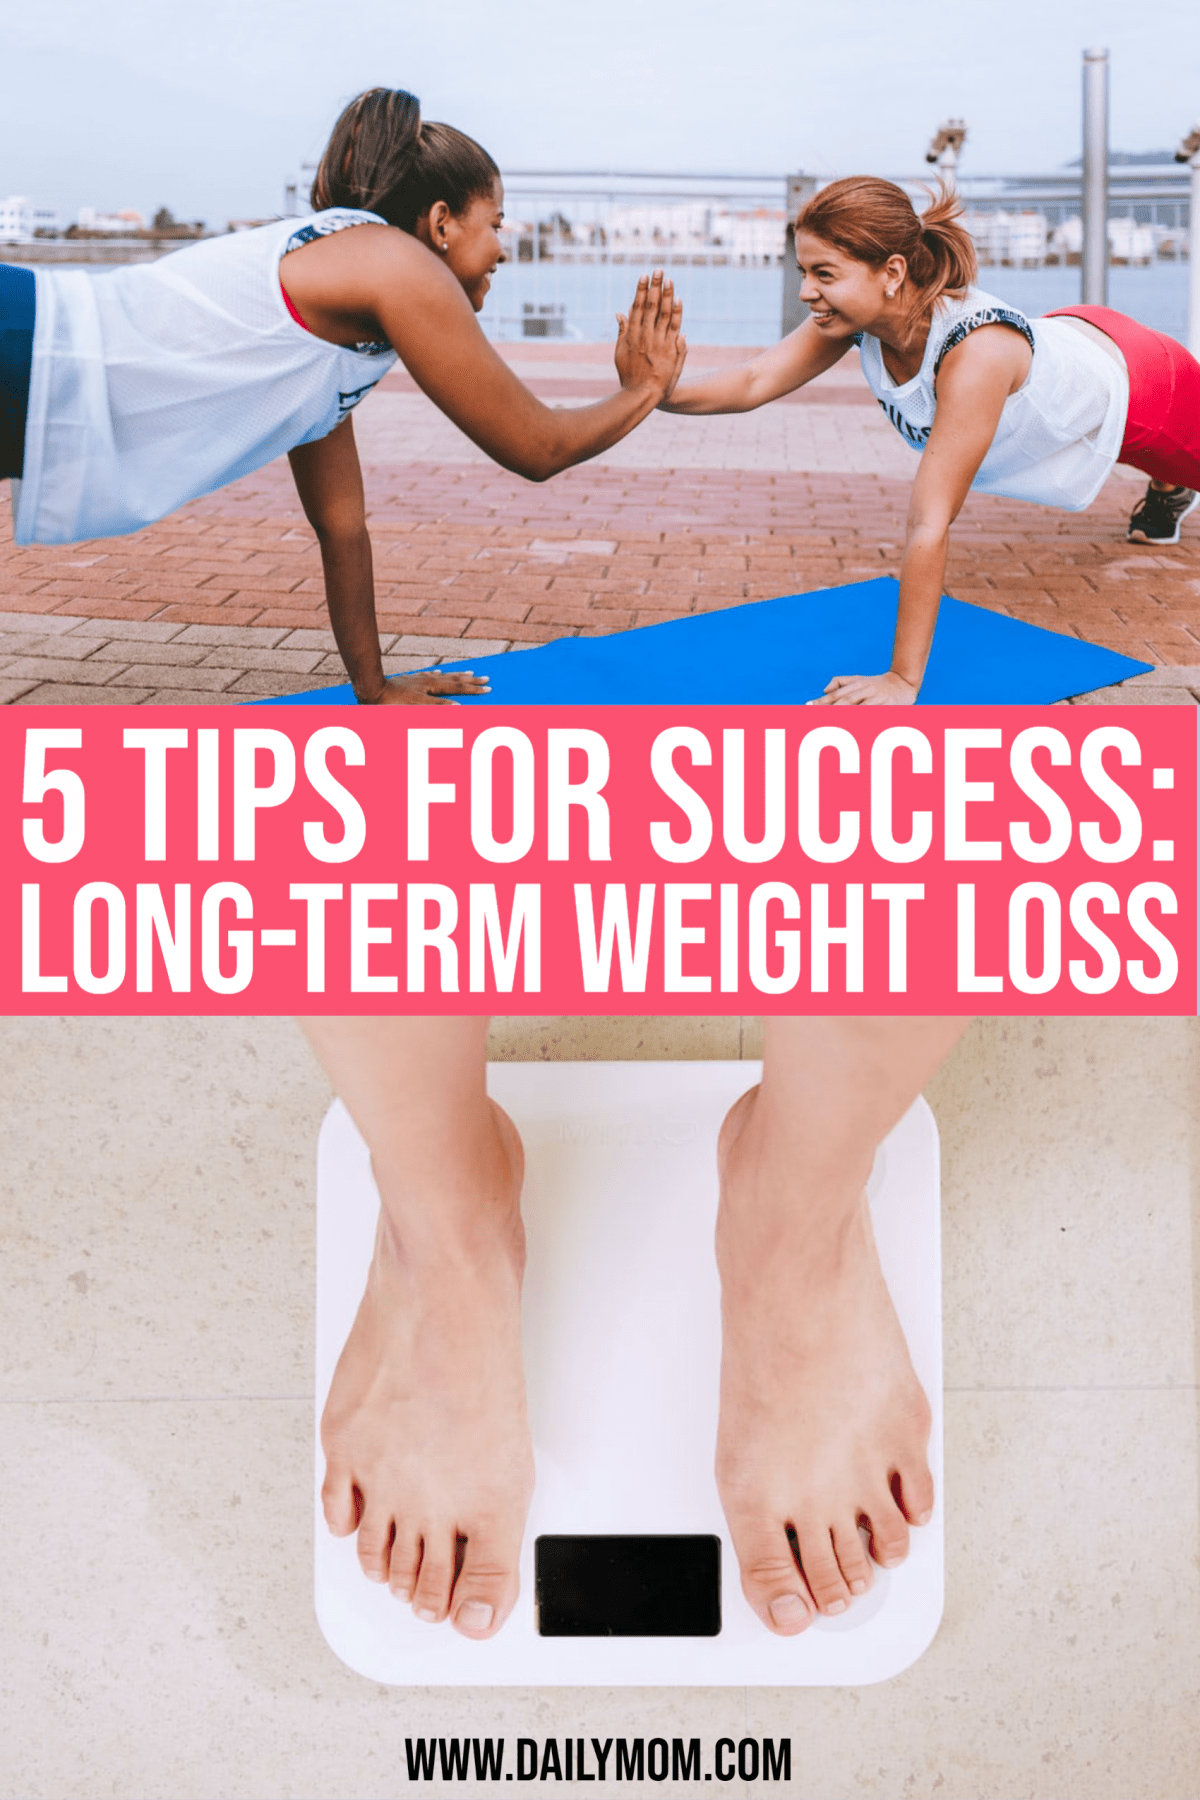 Daily Mom Parent Portal Best Weight Loss Programs